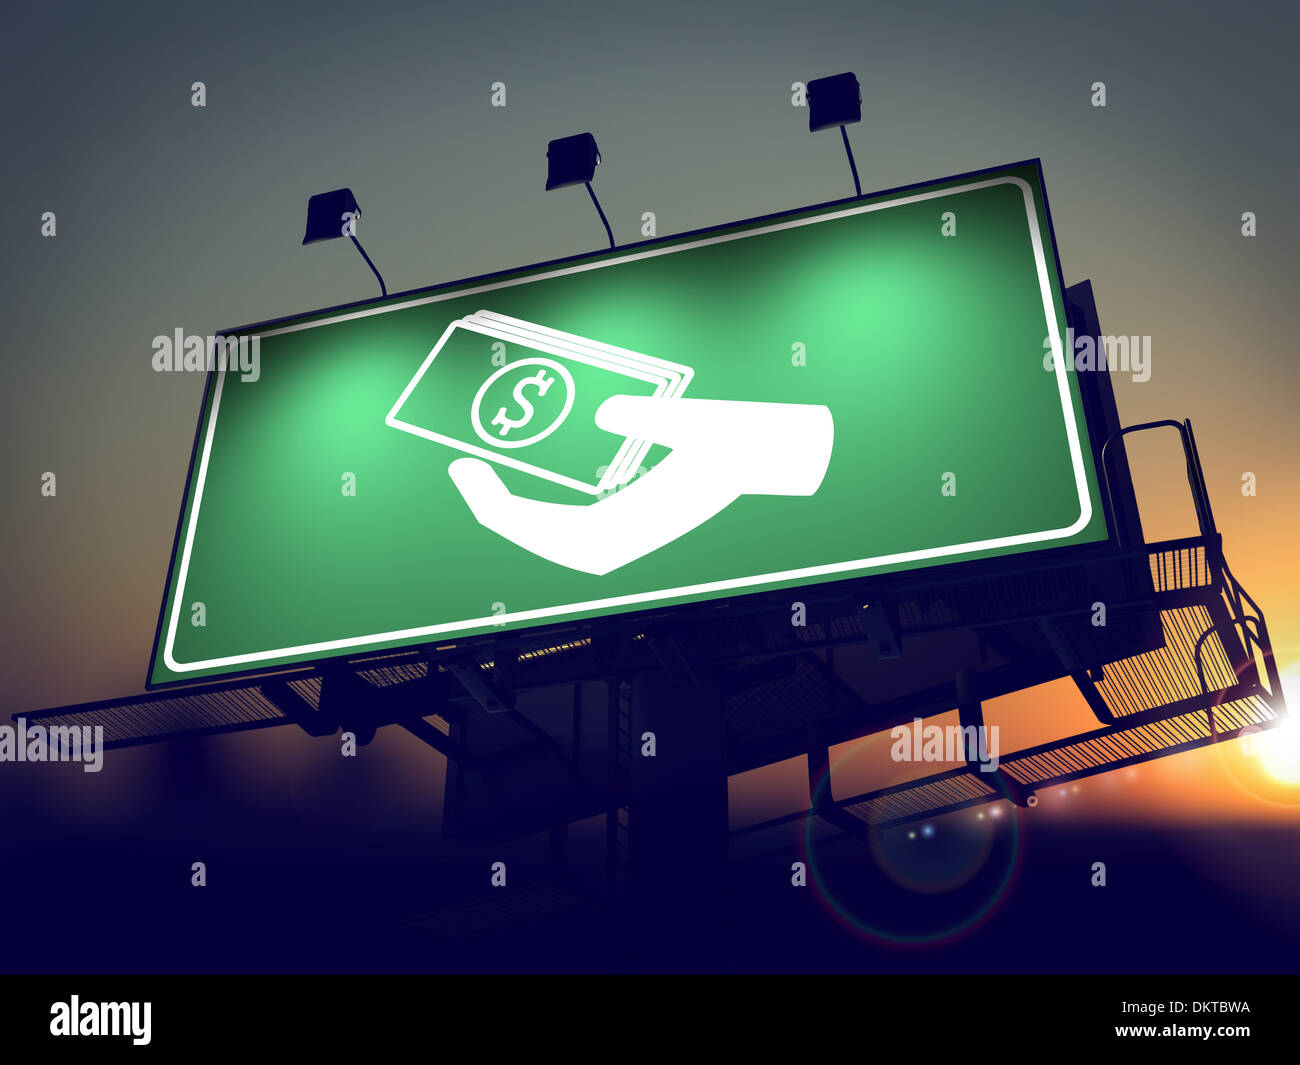 Icon of Money in the Hand on Green Billboard at Sunrise. - Stock Image